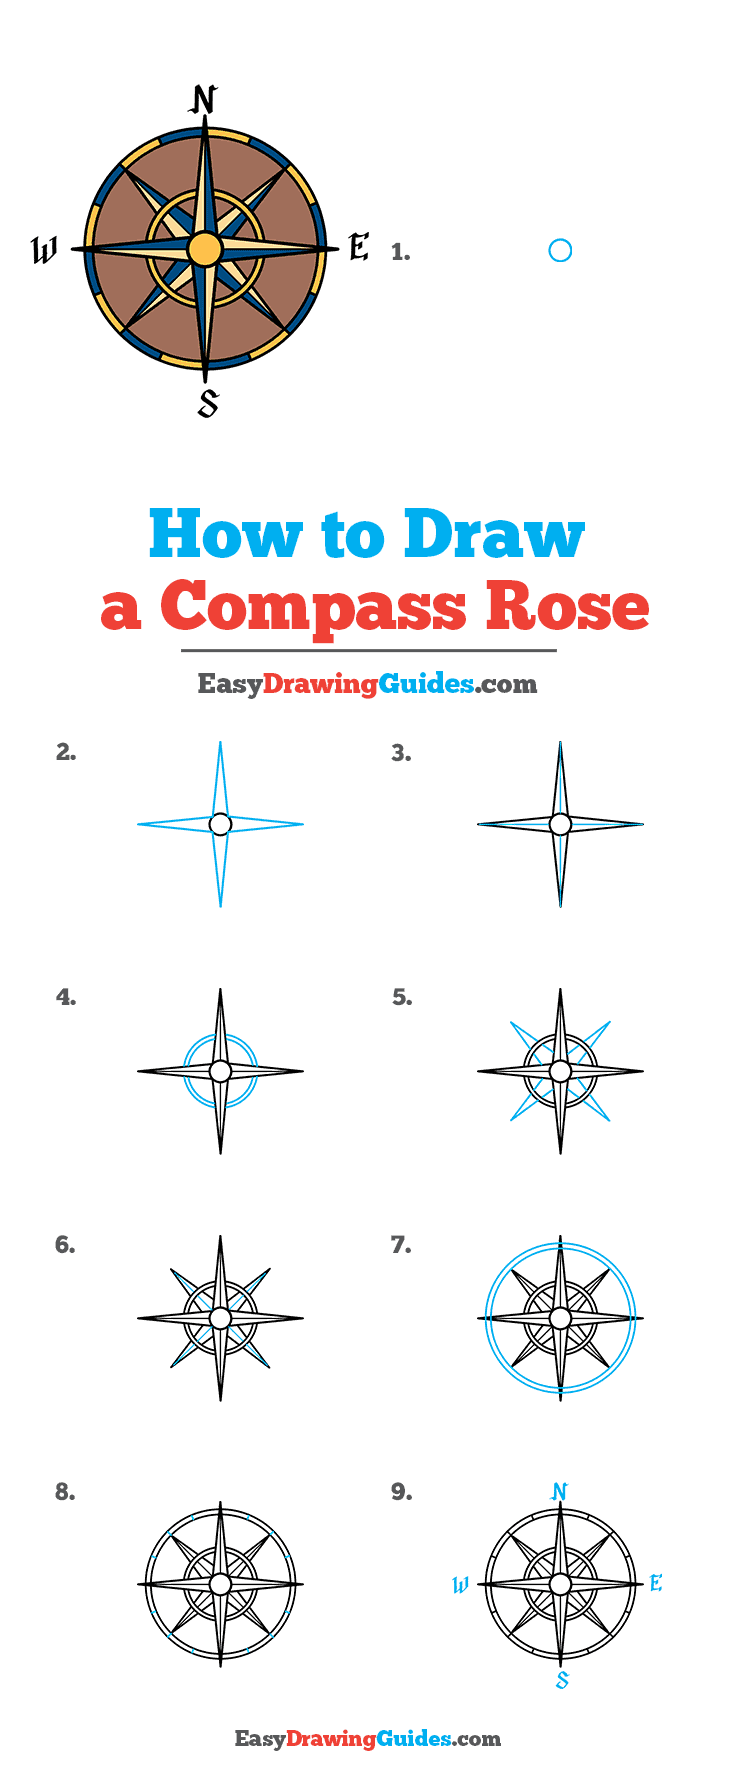 How to Draw a Compass Rose Step by Step Tutorial Image